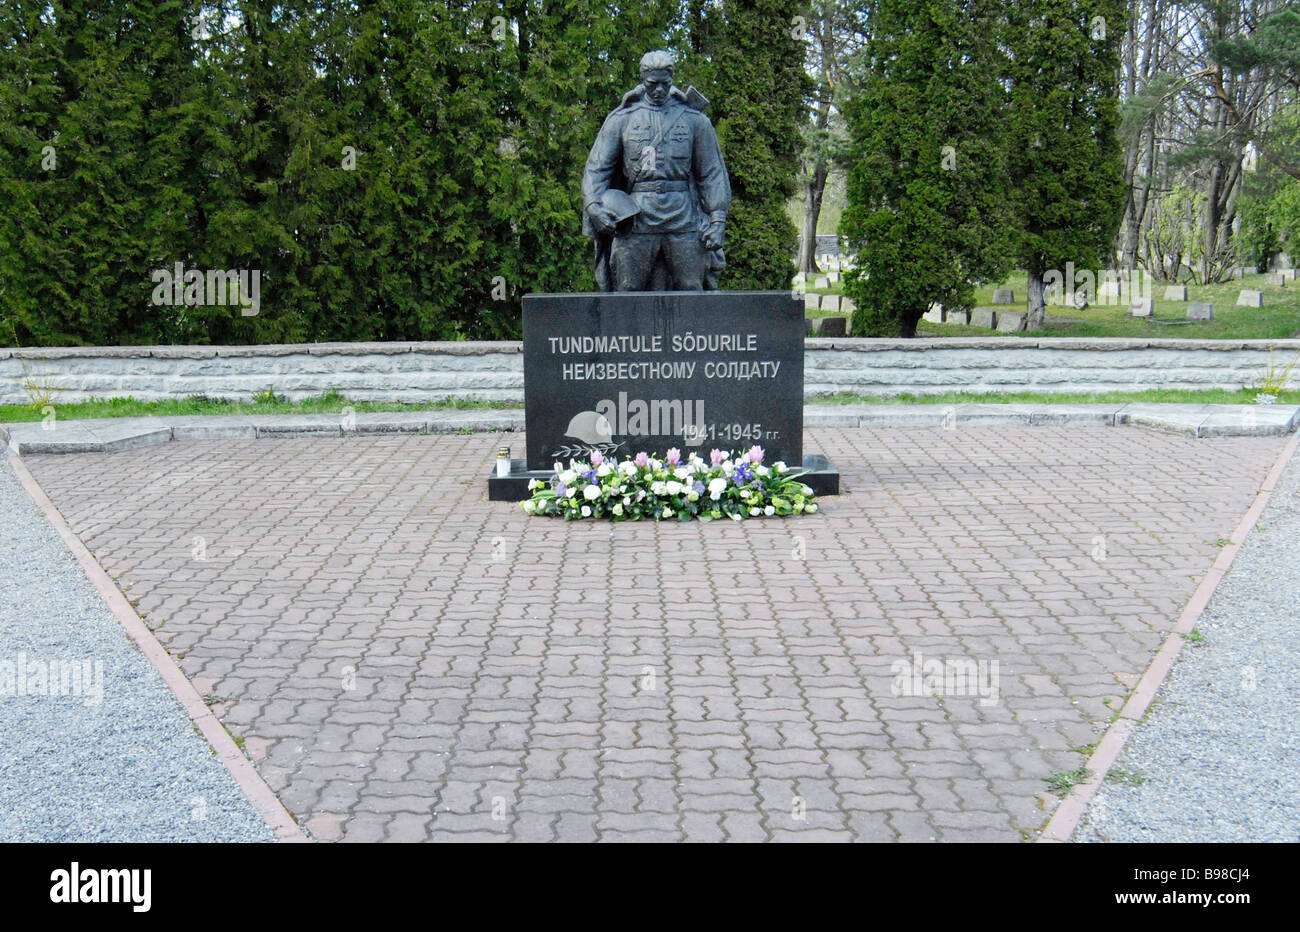 The Bronze Soldier statue is removed from Tonismagi Hill to a military cemetery in Tallinn - Stock Image